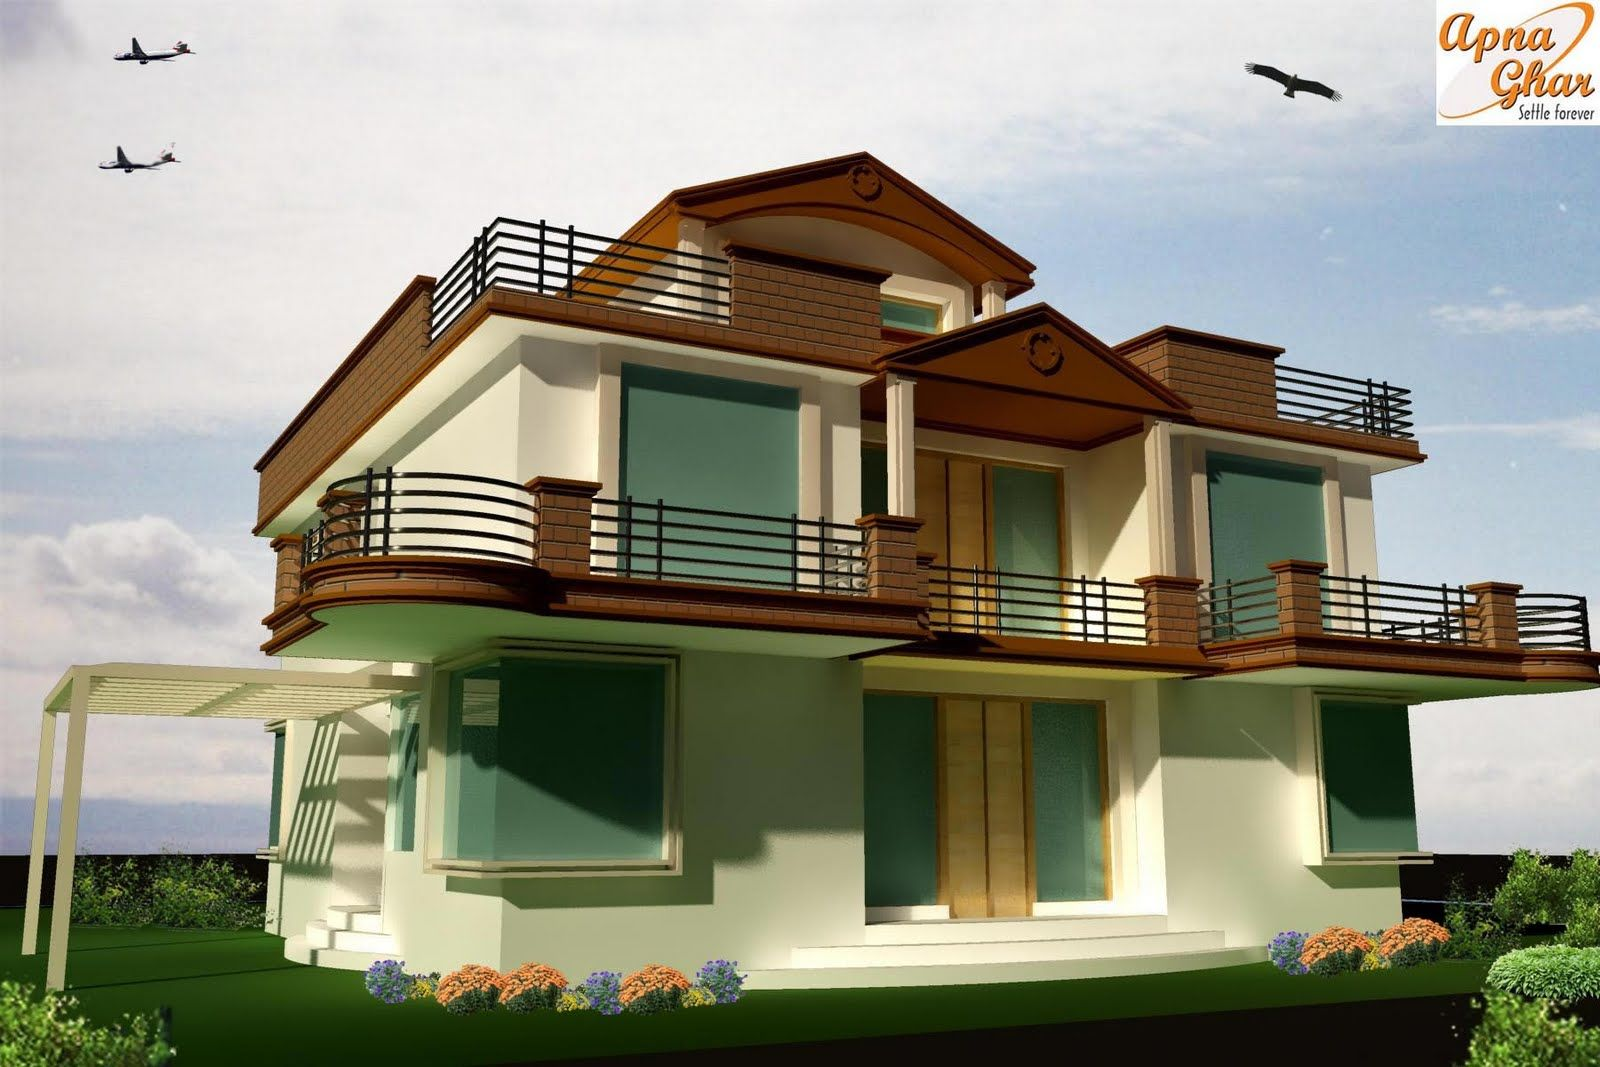 Architectural designs modern architectural house plans for Architecture building design